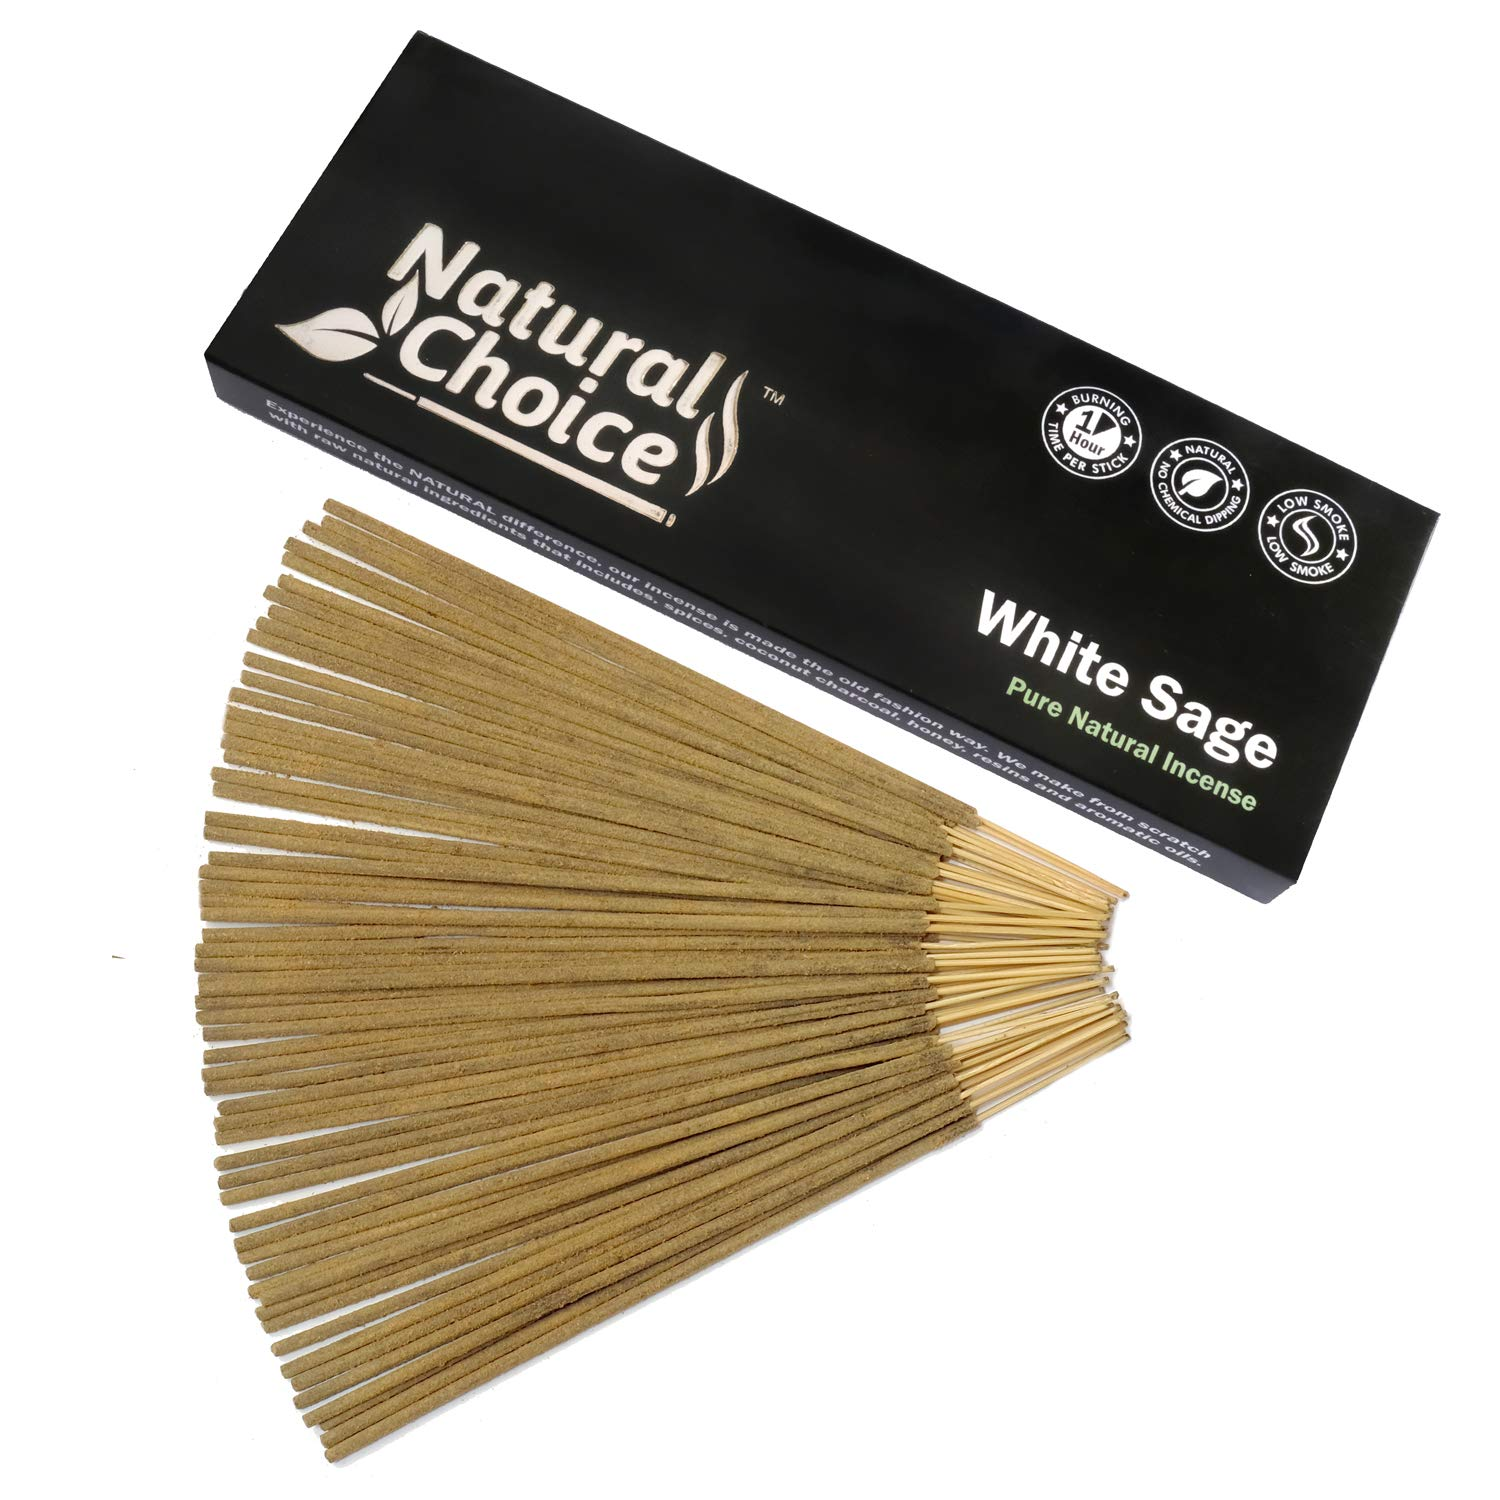 Natural Choice Incense White Sage Incense Sticks 100 Grams, Low Smoke Traditional Incense Sticks Made from Scratch, Never Dipped by Natural Choice Incense (Image #1)